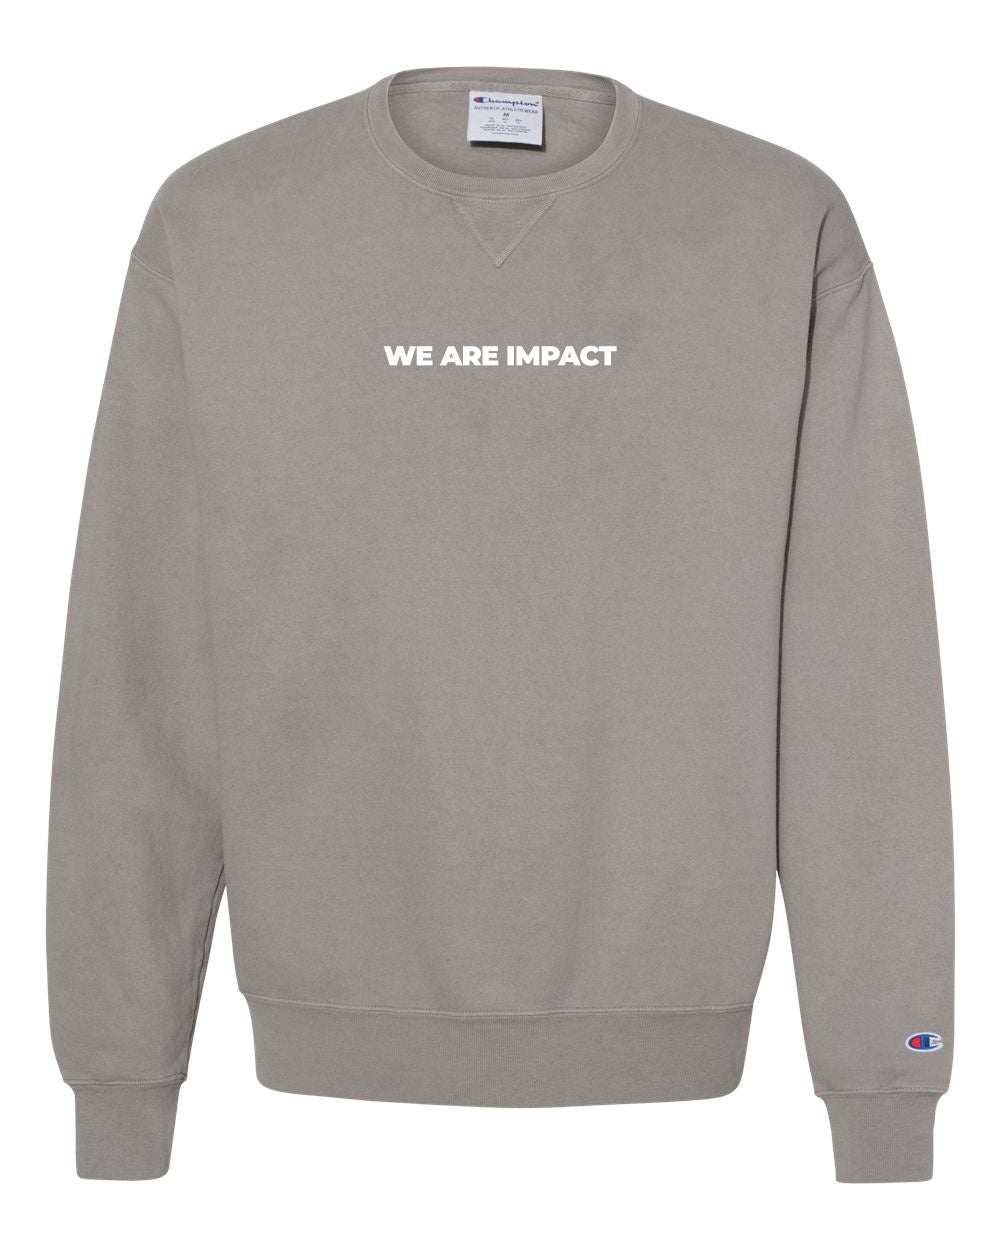 WE ARE IMPACT Crew Neck Sweatshirt